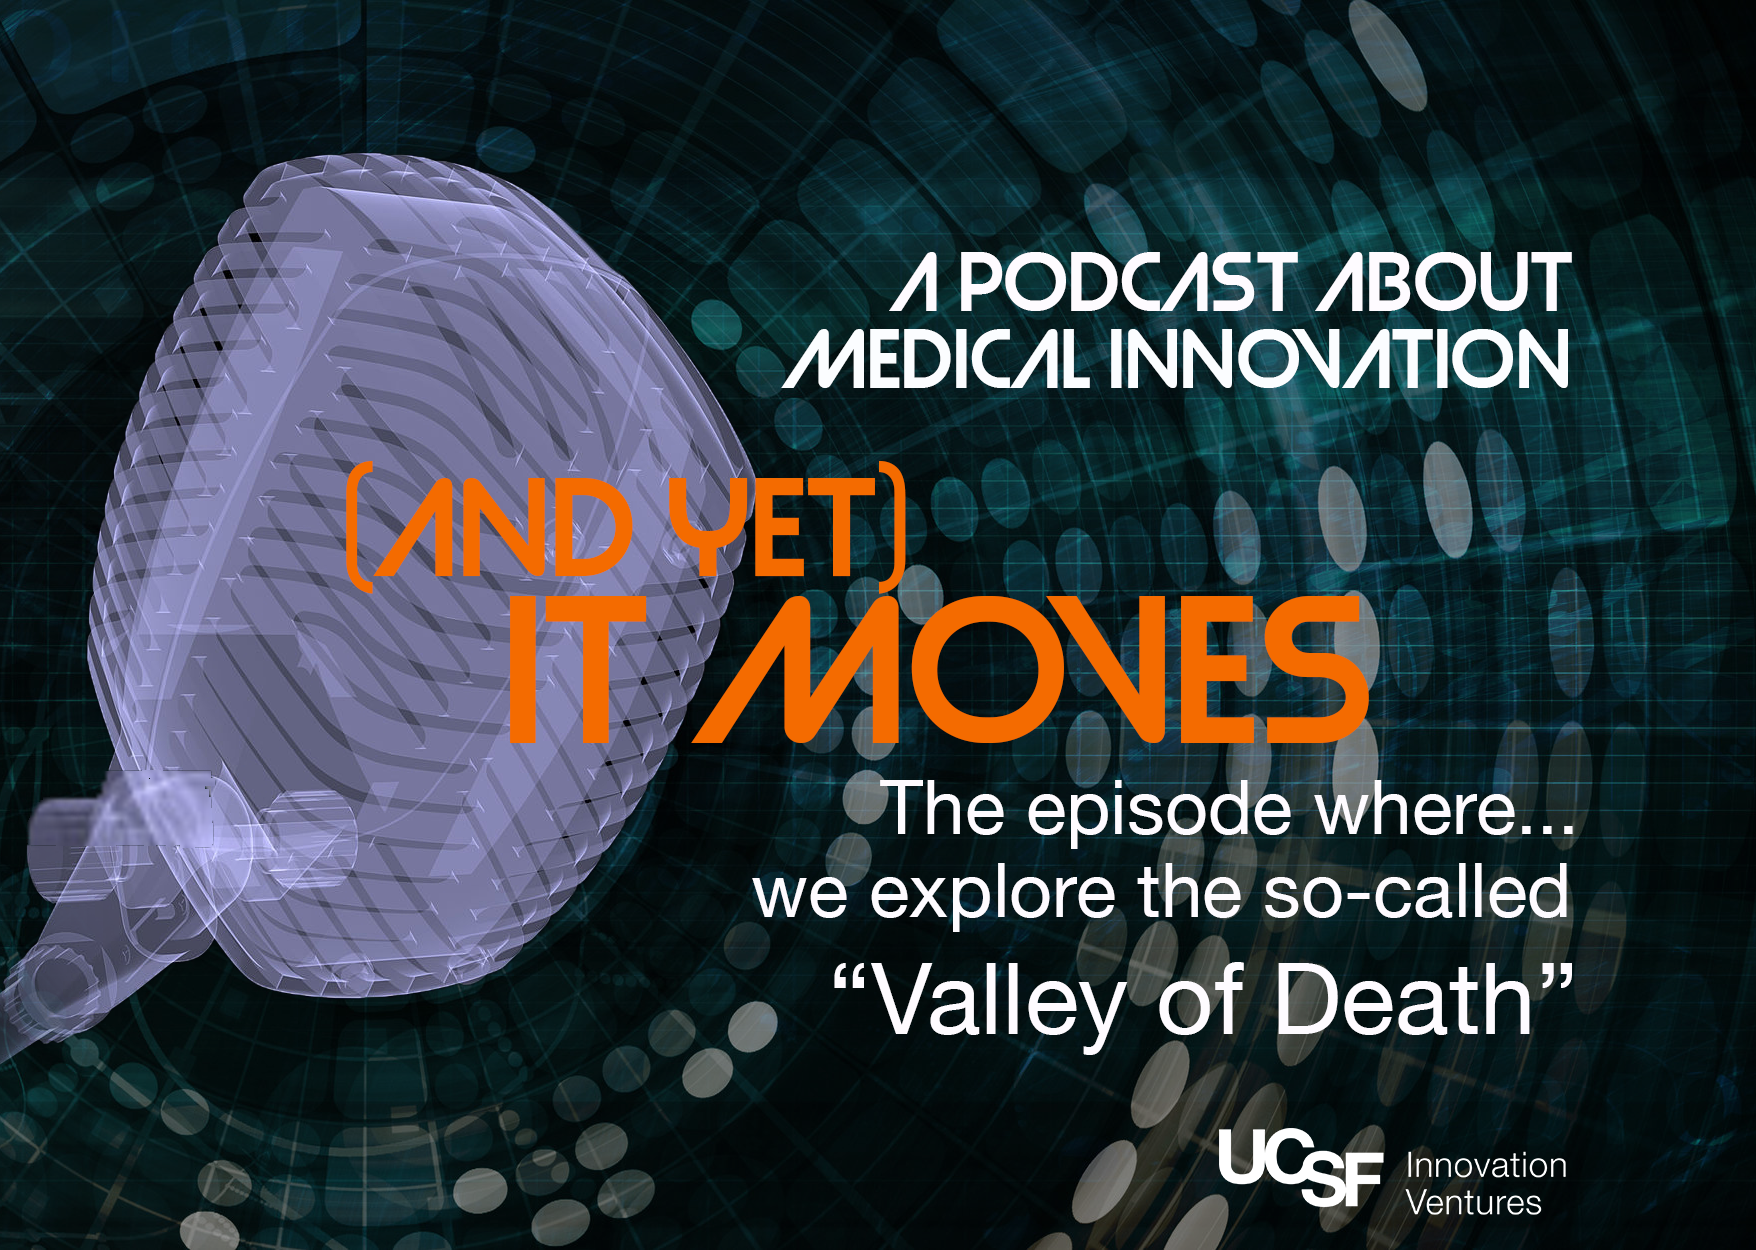 It Moves Podcast. Episode one: Valley of Death